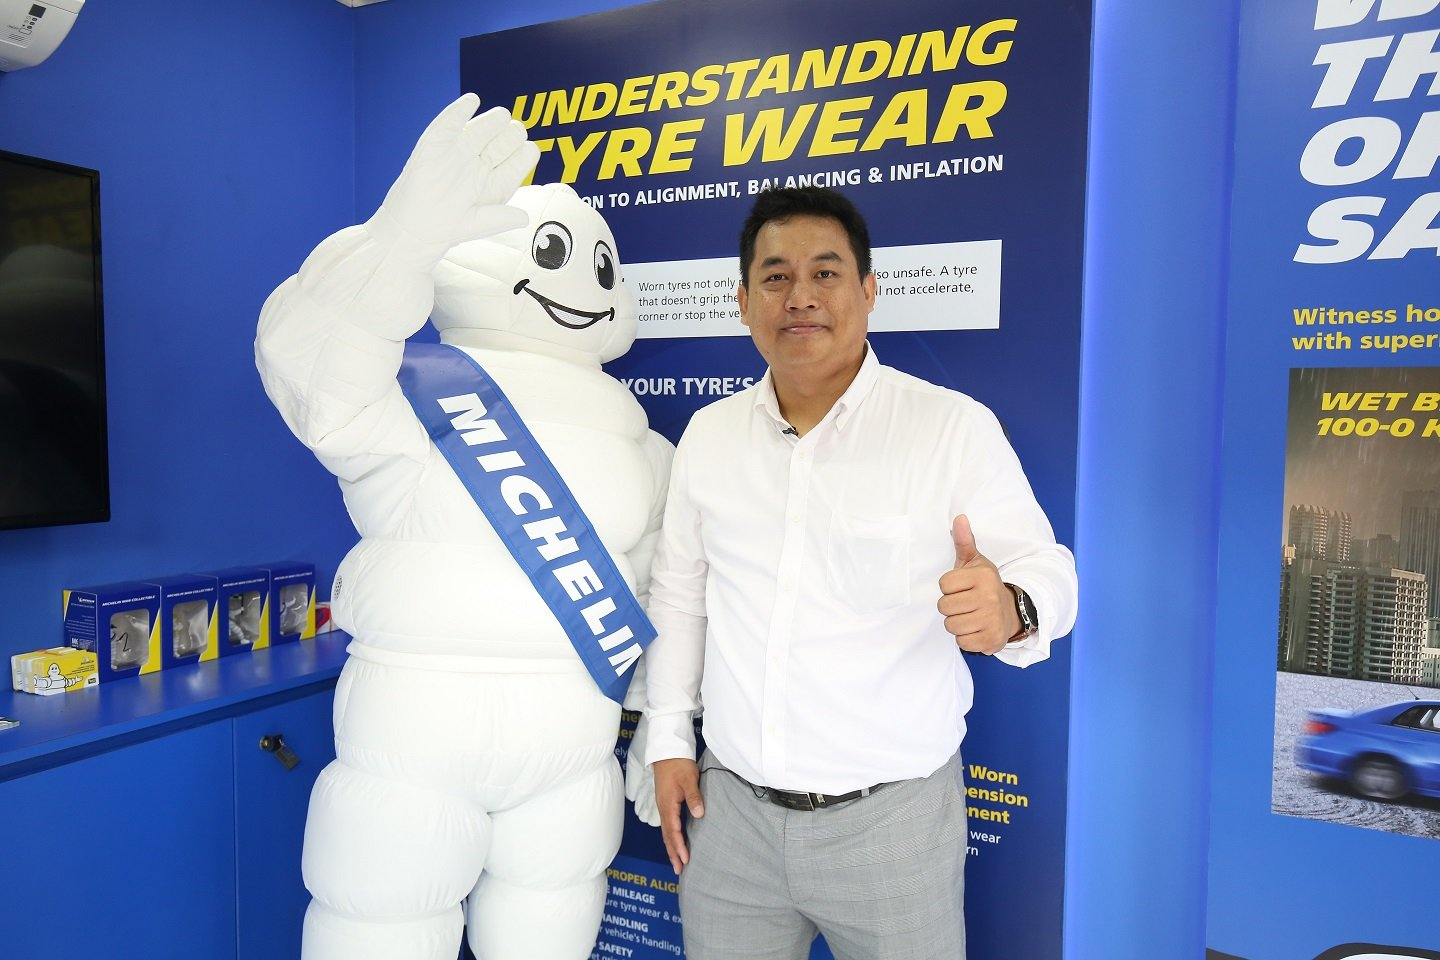 MICHELIN CONTINUES TO CONTRIBUTE TO ROAD SAFETY IN MALAYSIA WITH MICHELIN SAFE ON THE ROAD CAMPAIGN